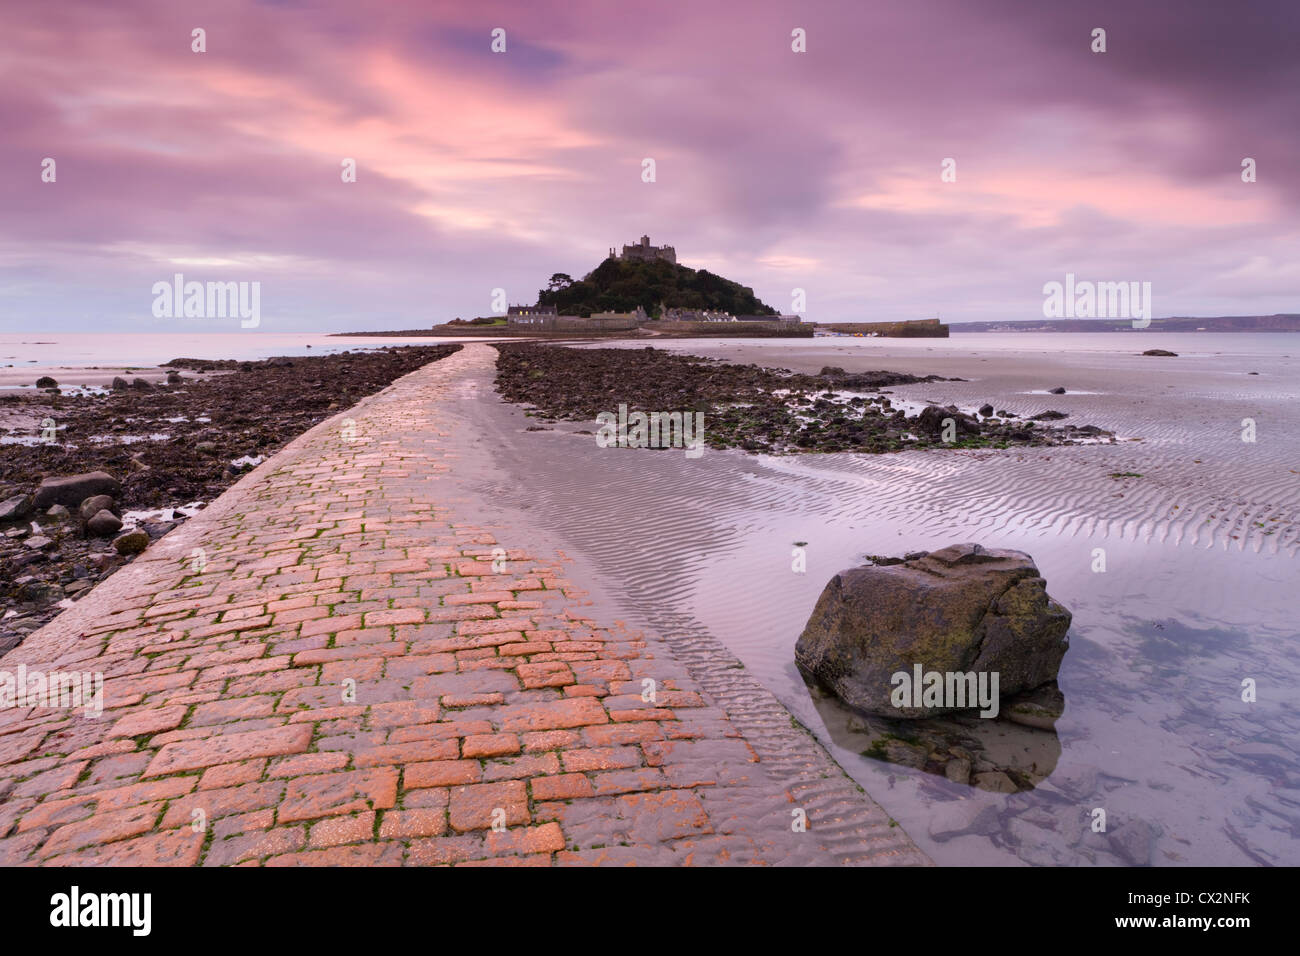 Causeway at low tide, leading to St Michael's Mount, Cornwall, England. Autumn (October) 2010. - Stock Image